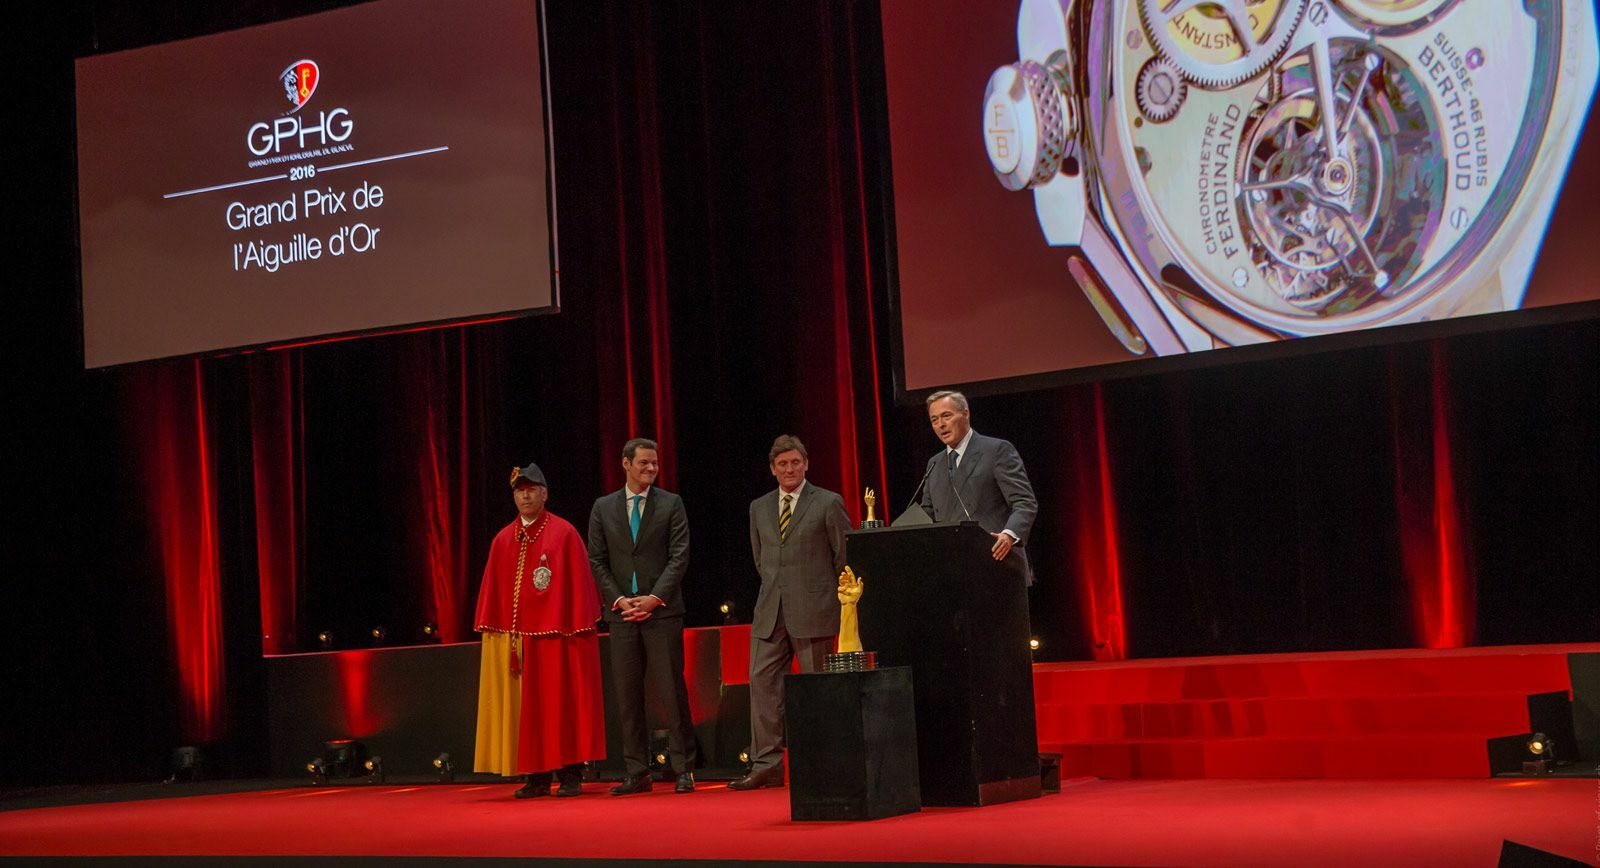 16th Grand Prix d'Horlogerie de Genève: Winning Watches